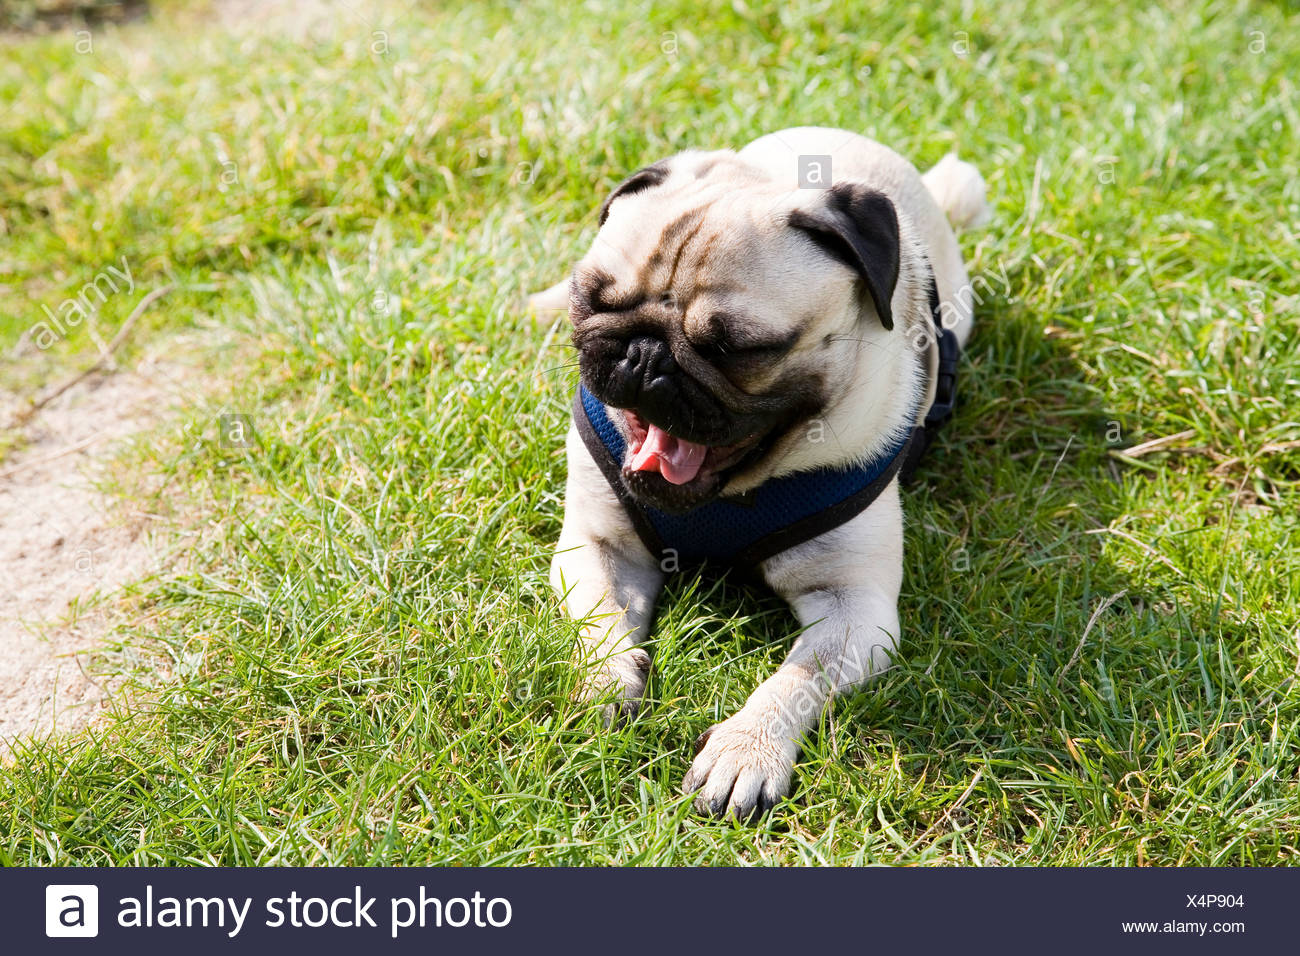 Young pug lying on a meadow yawning - Stock Image